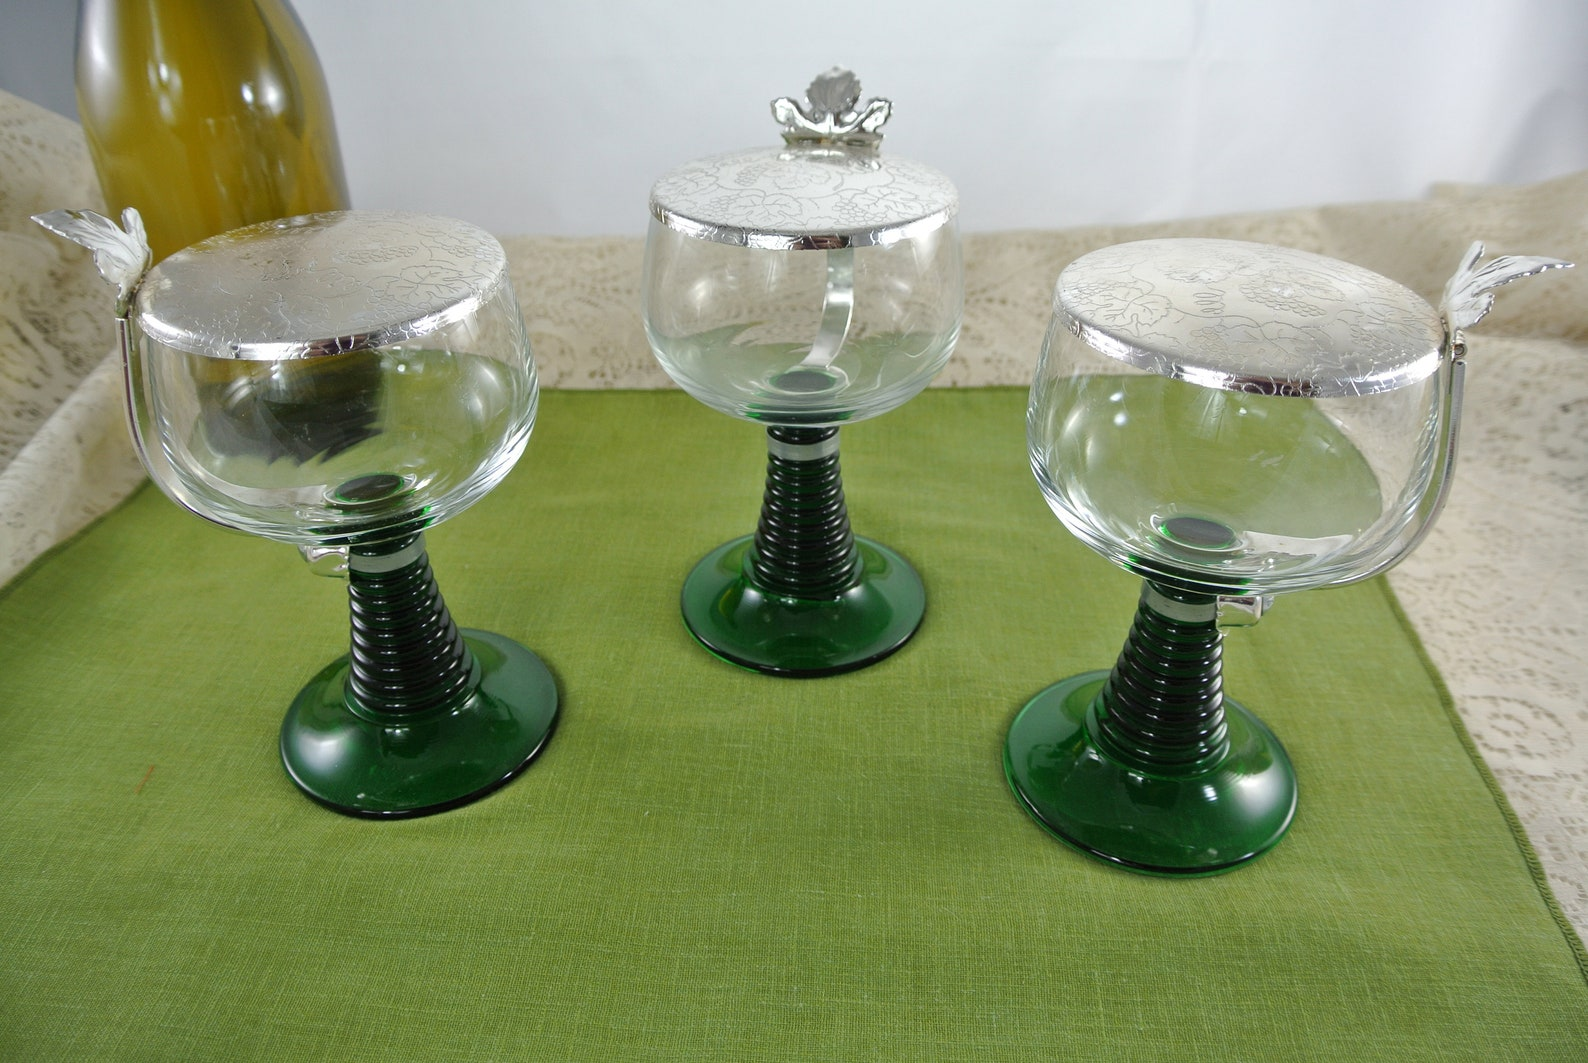 Vintage Rhein Roemer Wine Goblets with Green Stem and Chrome Lids